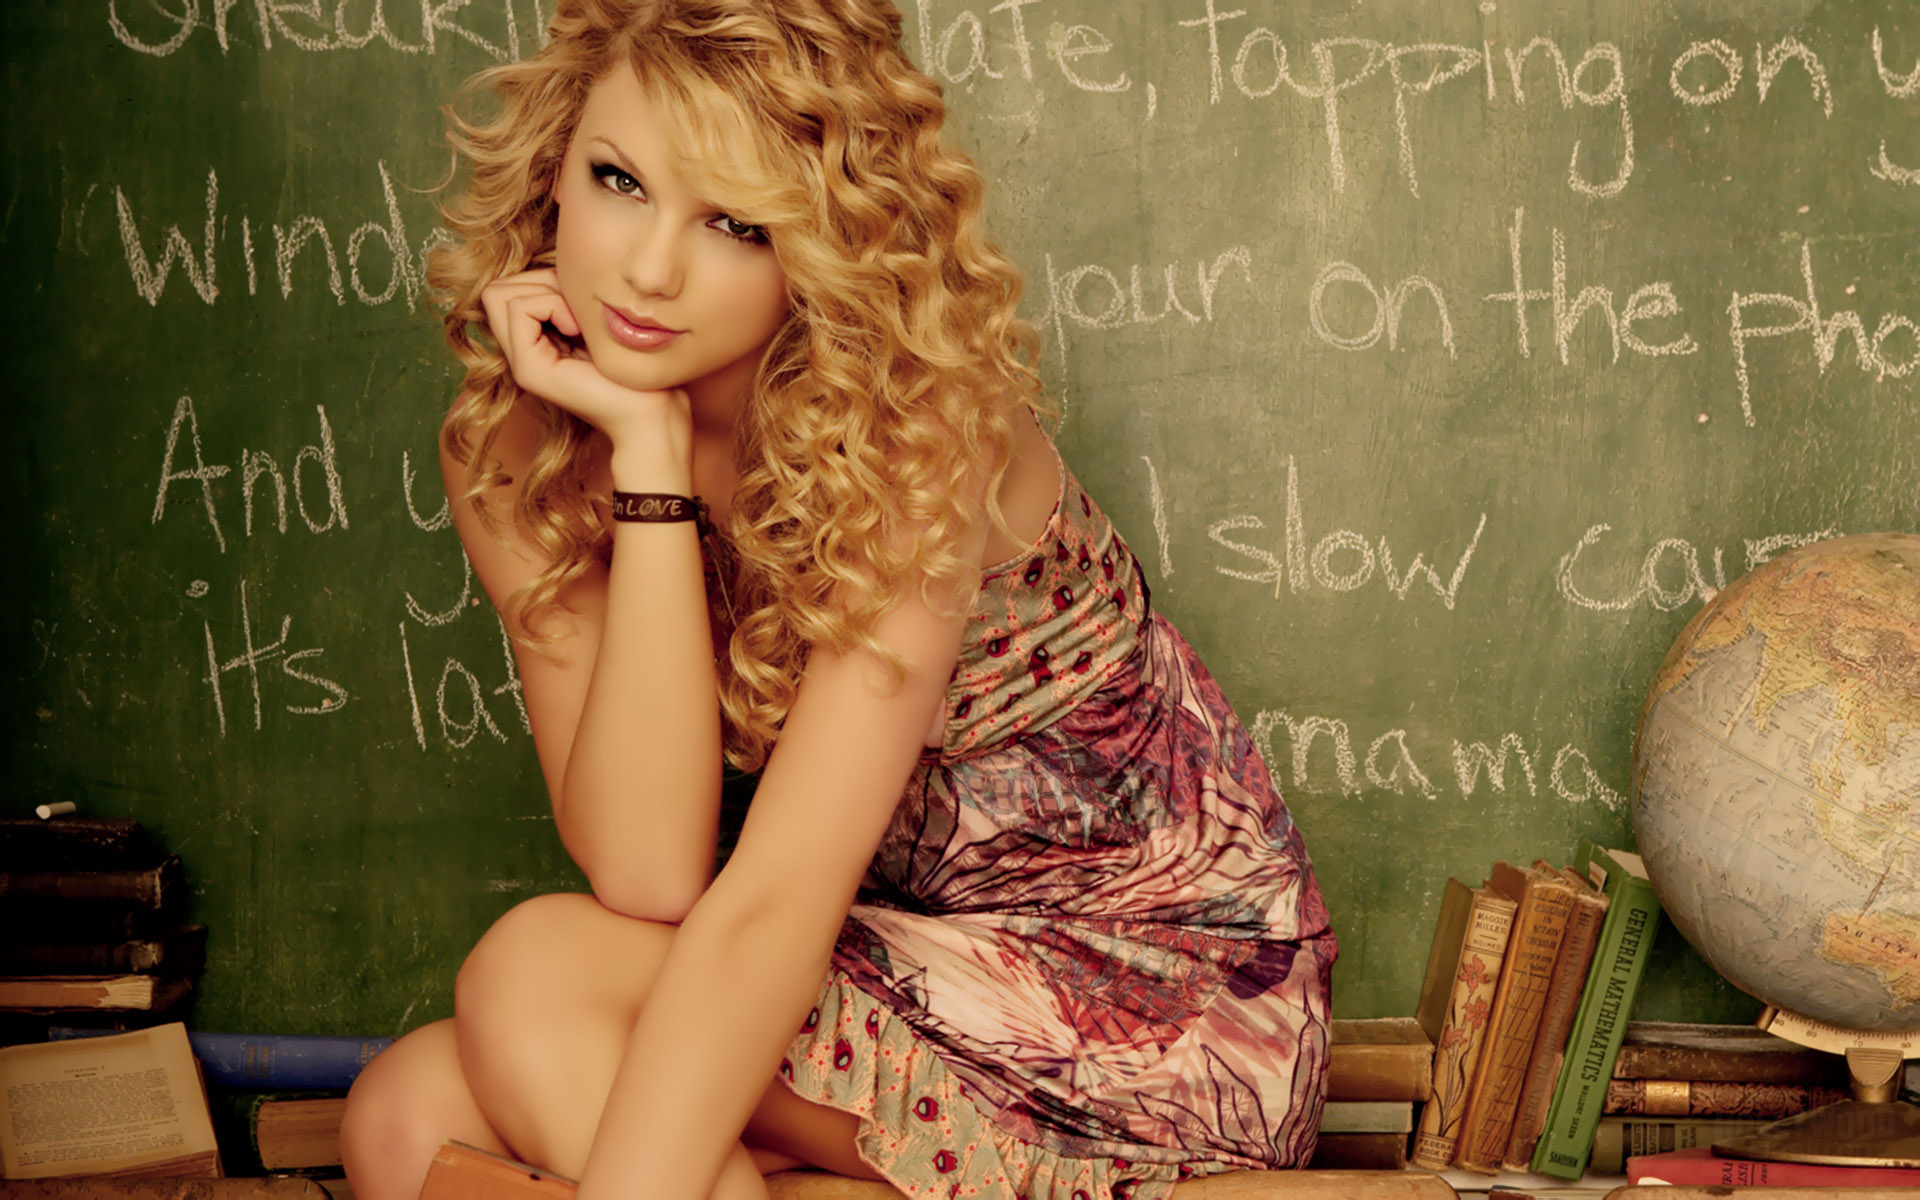 Taylor swift feet wallpapers hd wallpapers preview this wallpaper download this wallpaper voltagebd Image collections